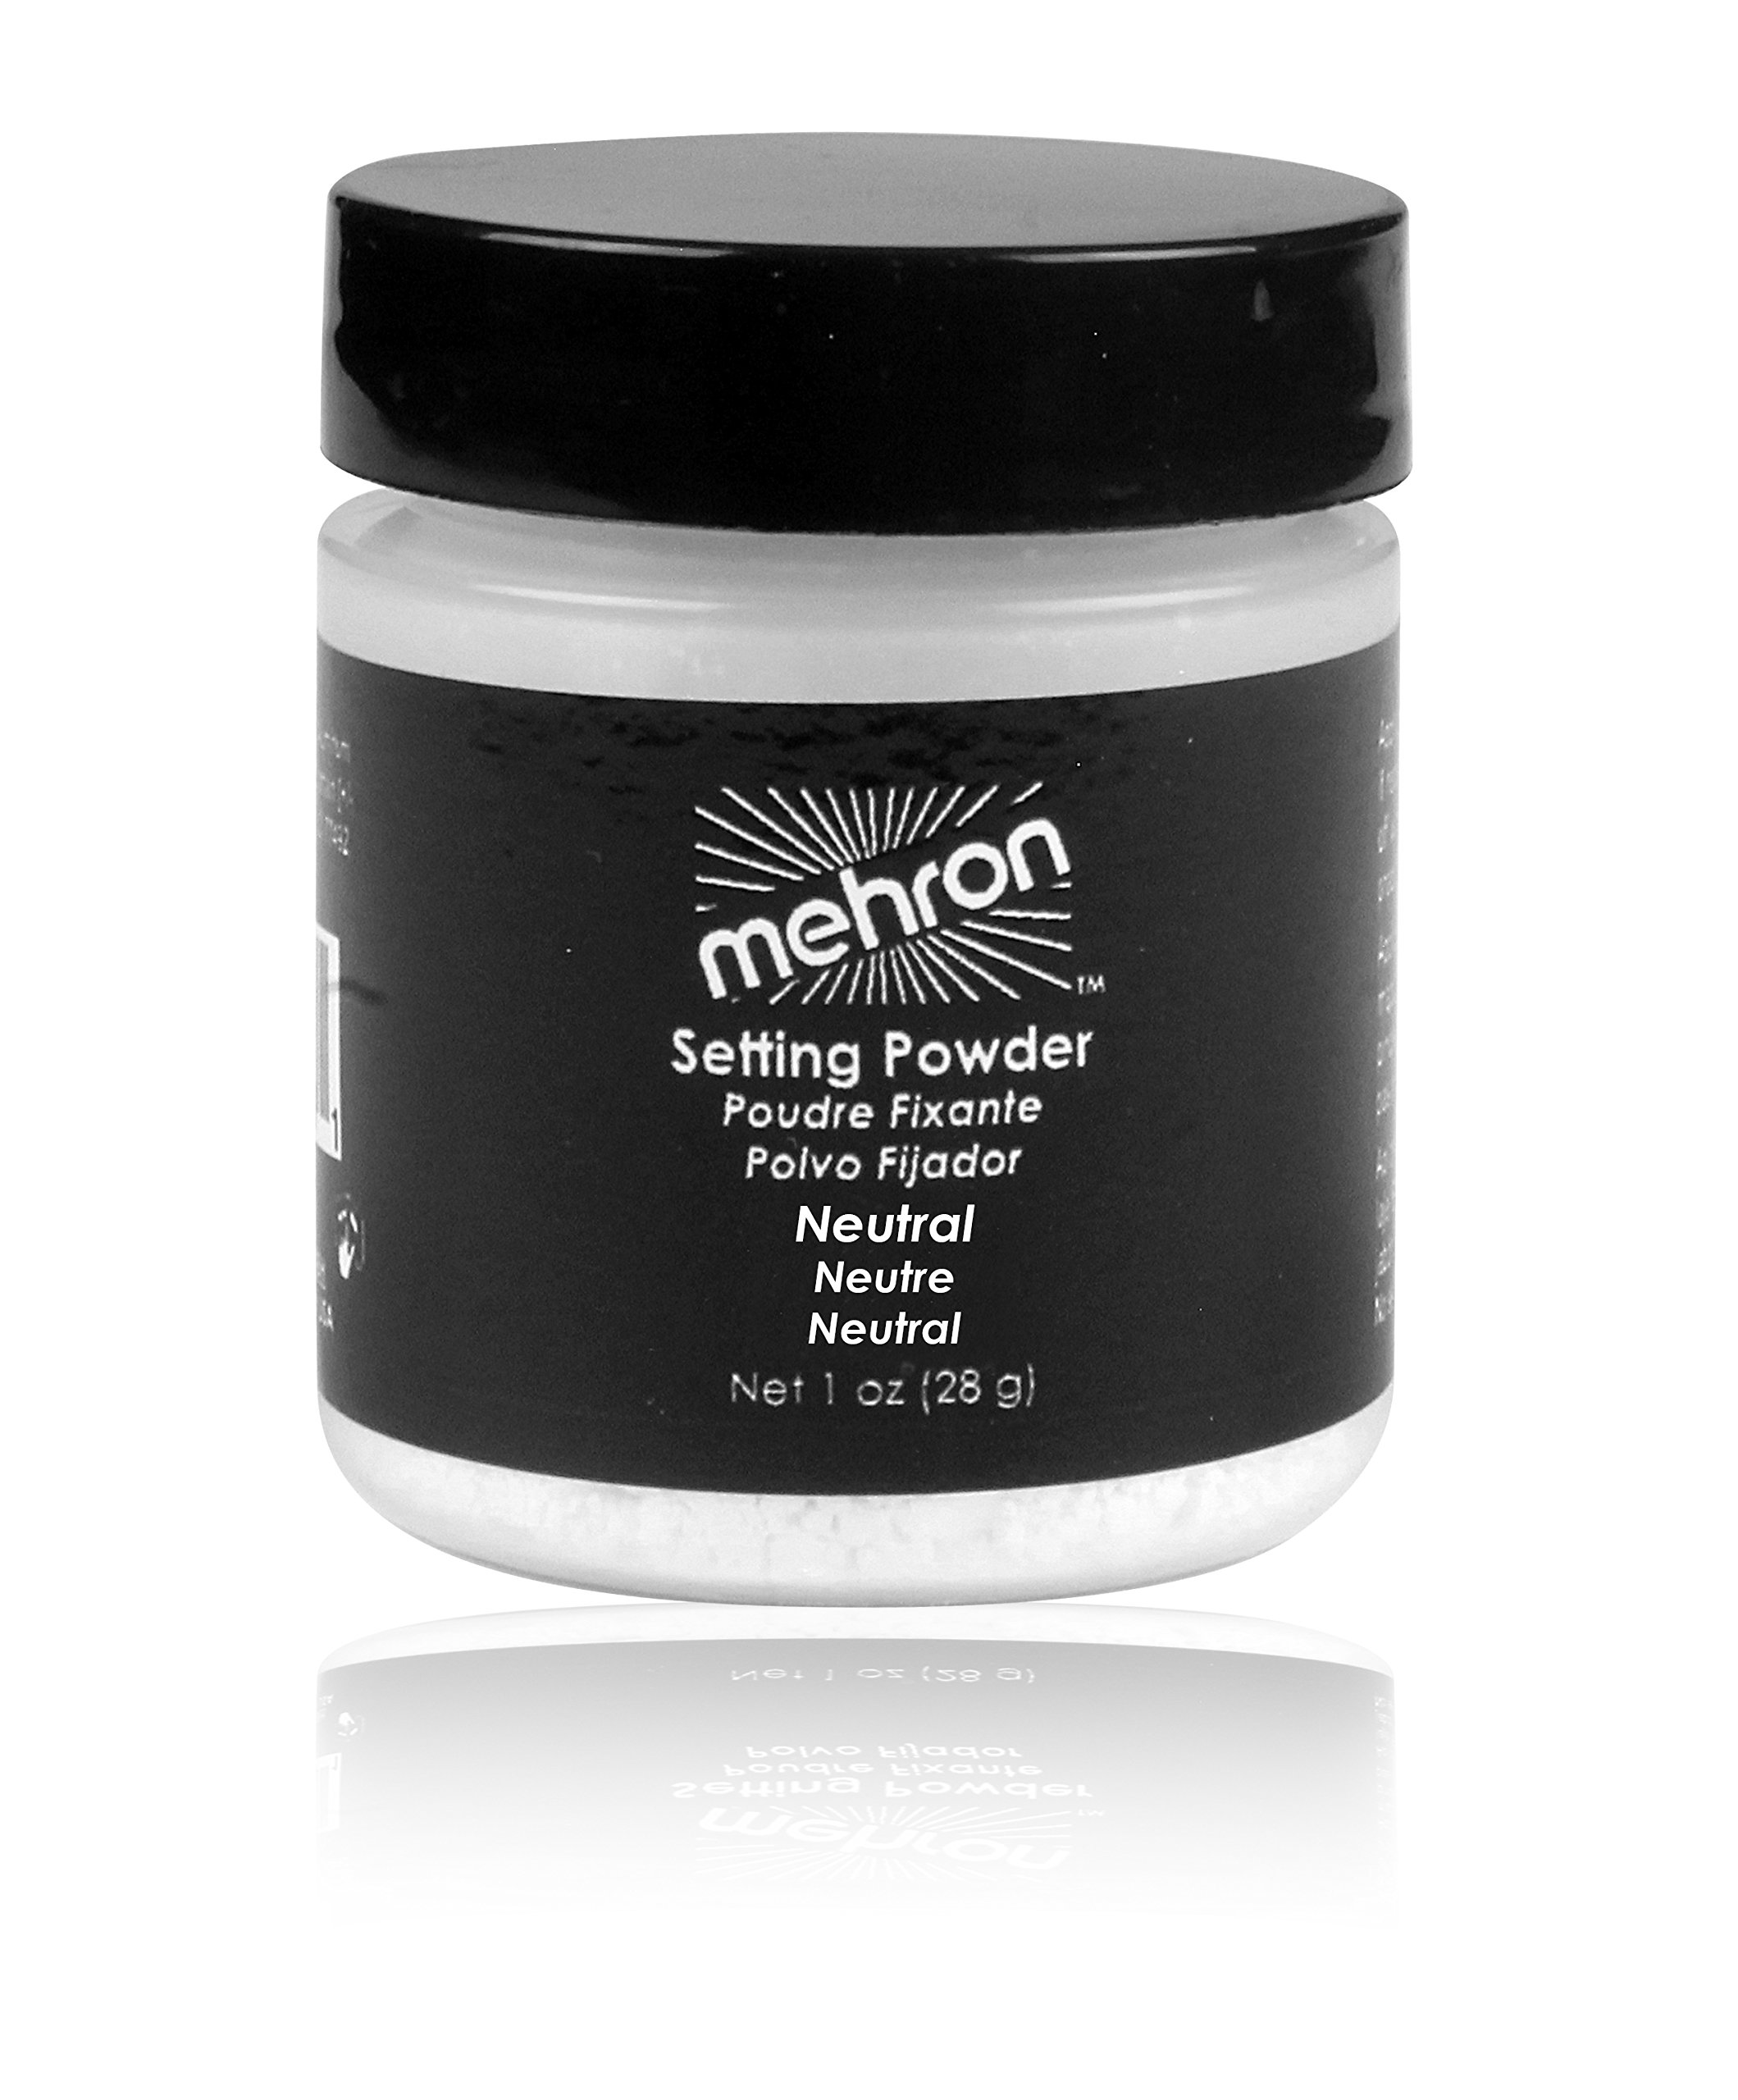 Mehron Makeup Ultra Fine Setting Powder NEUTRAL – 1oz Shaker Jar